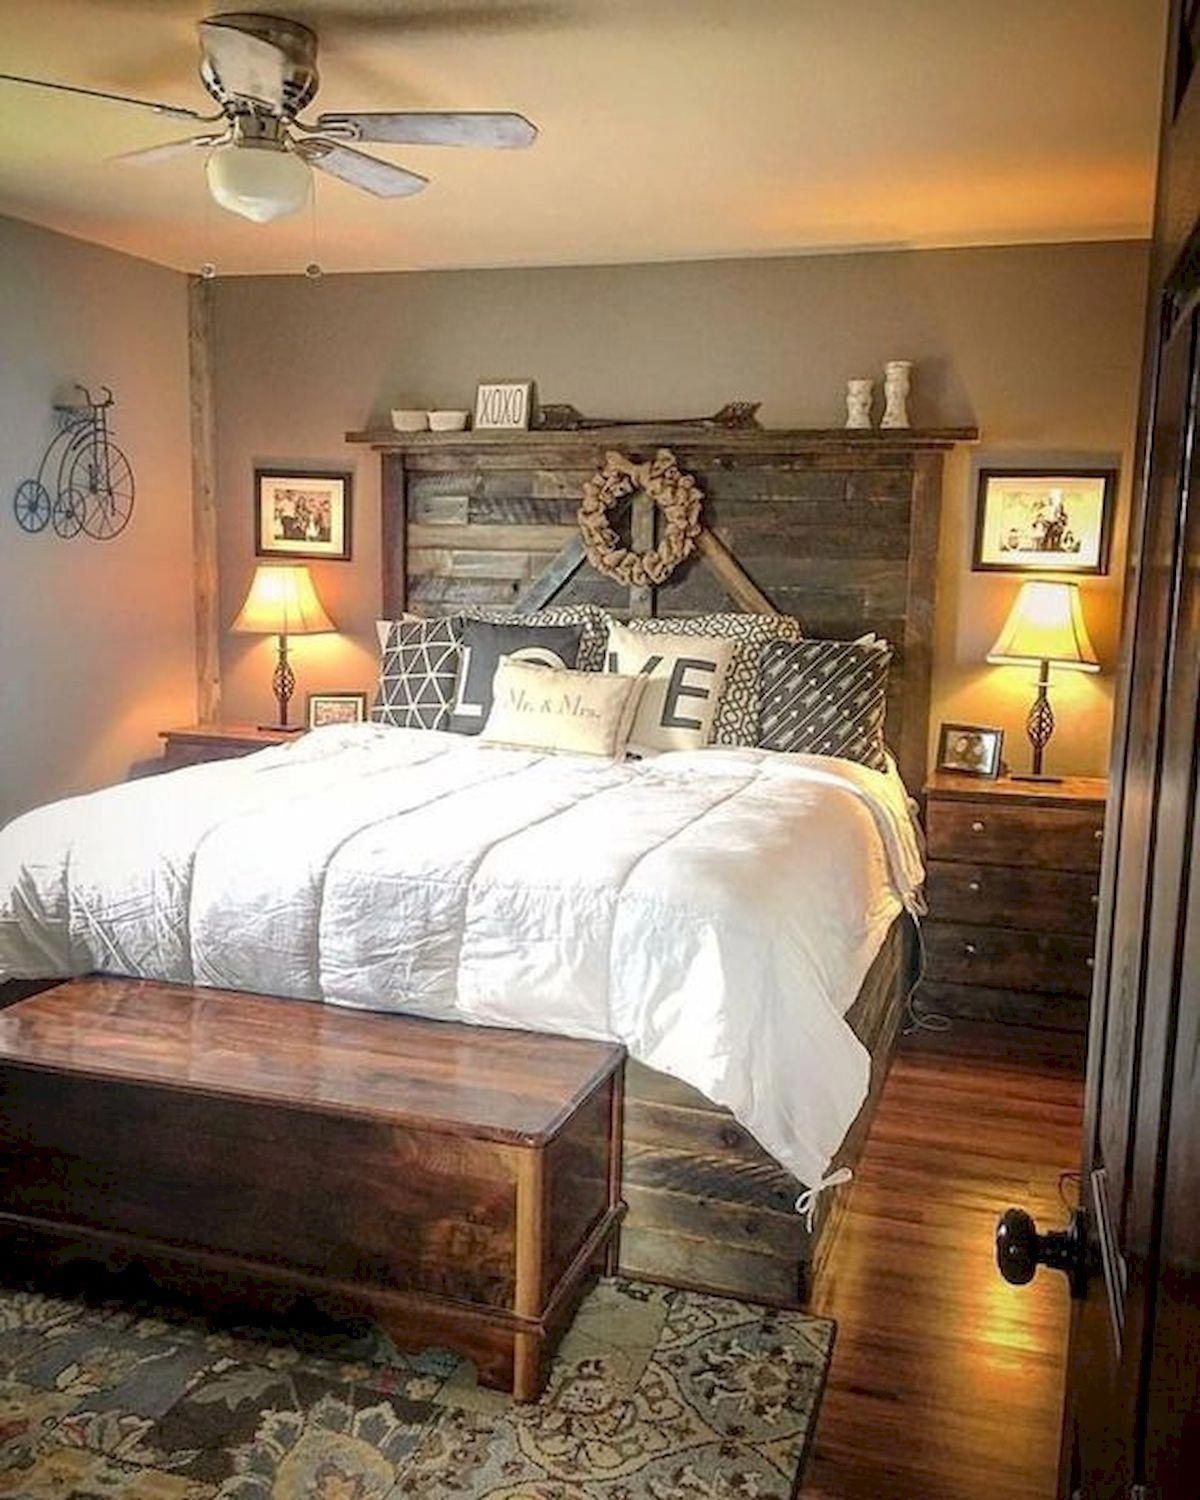 Designing Your Very Own Bedroom